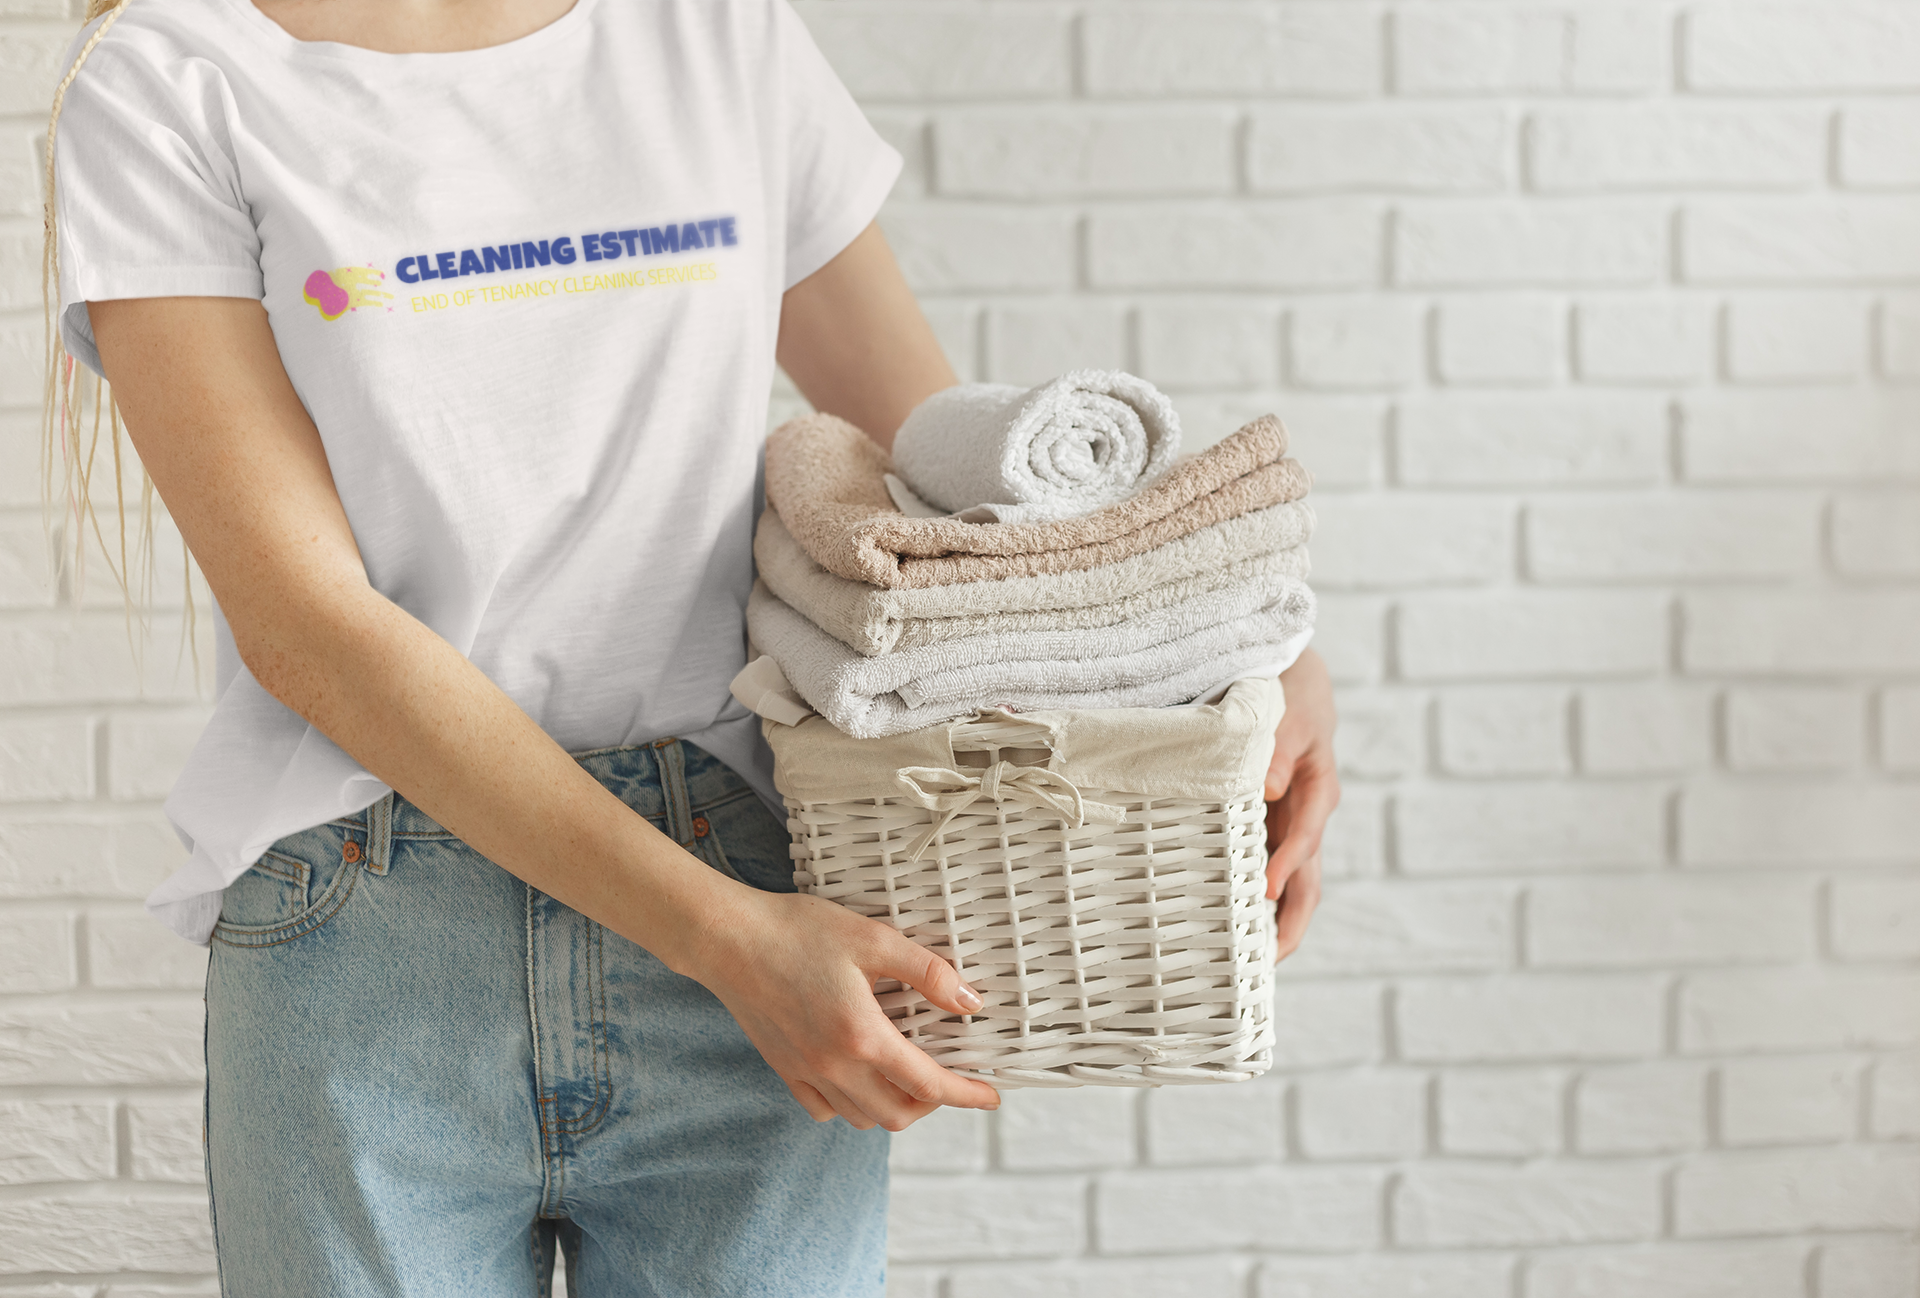 Cleaning Estimate Team